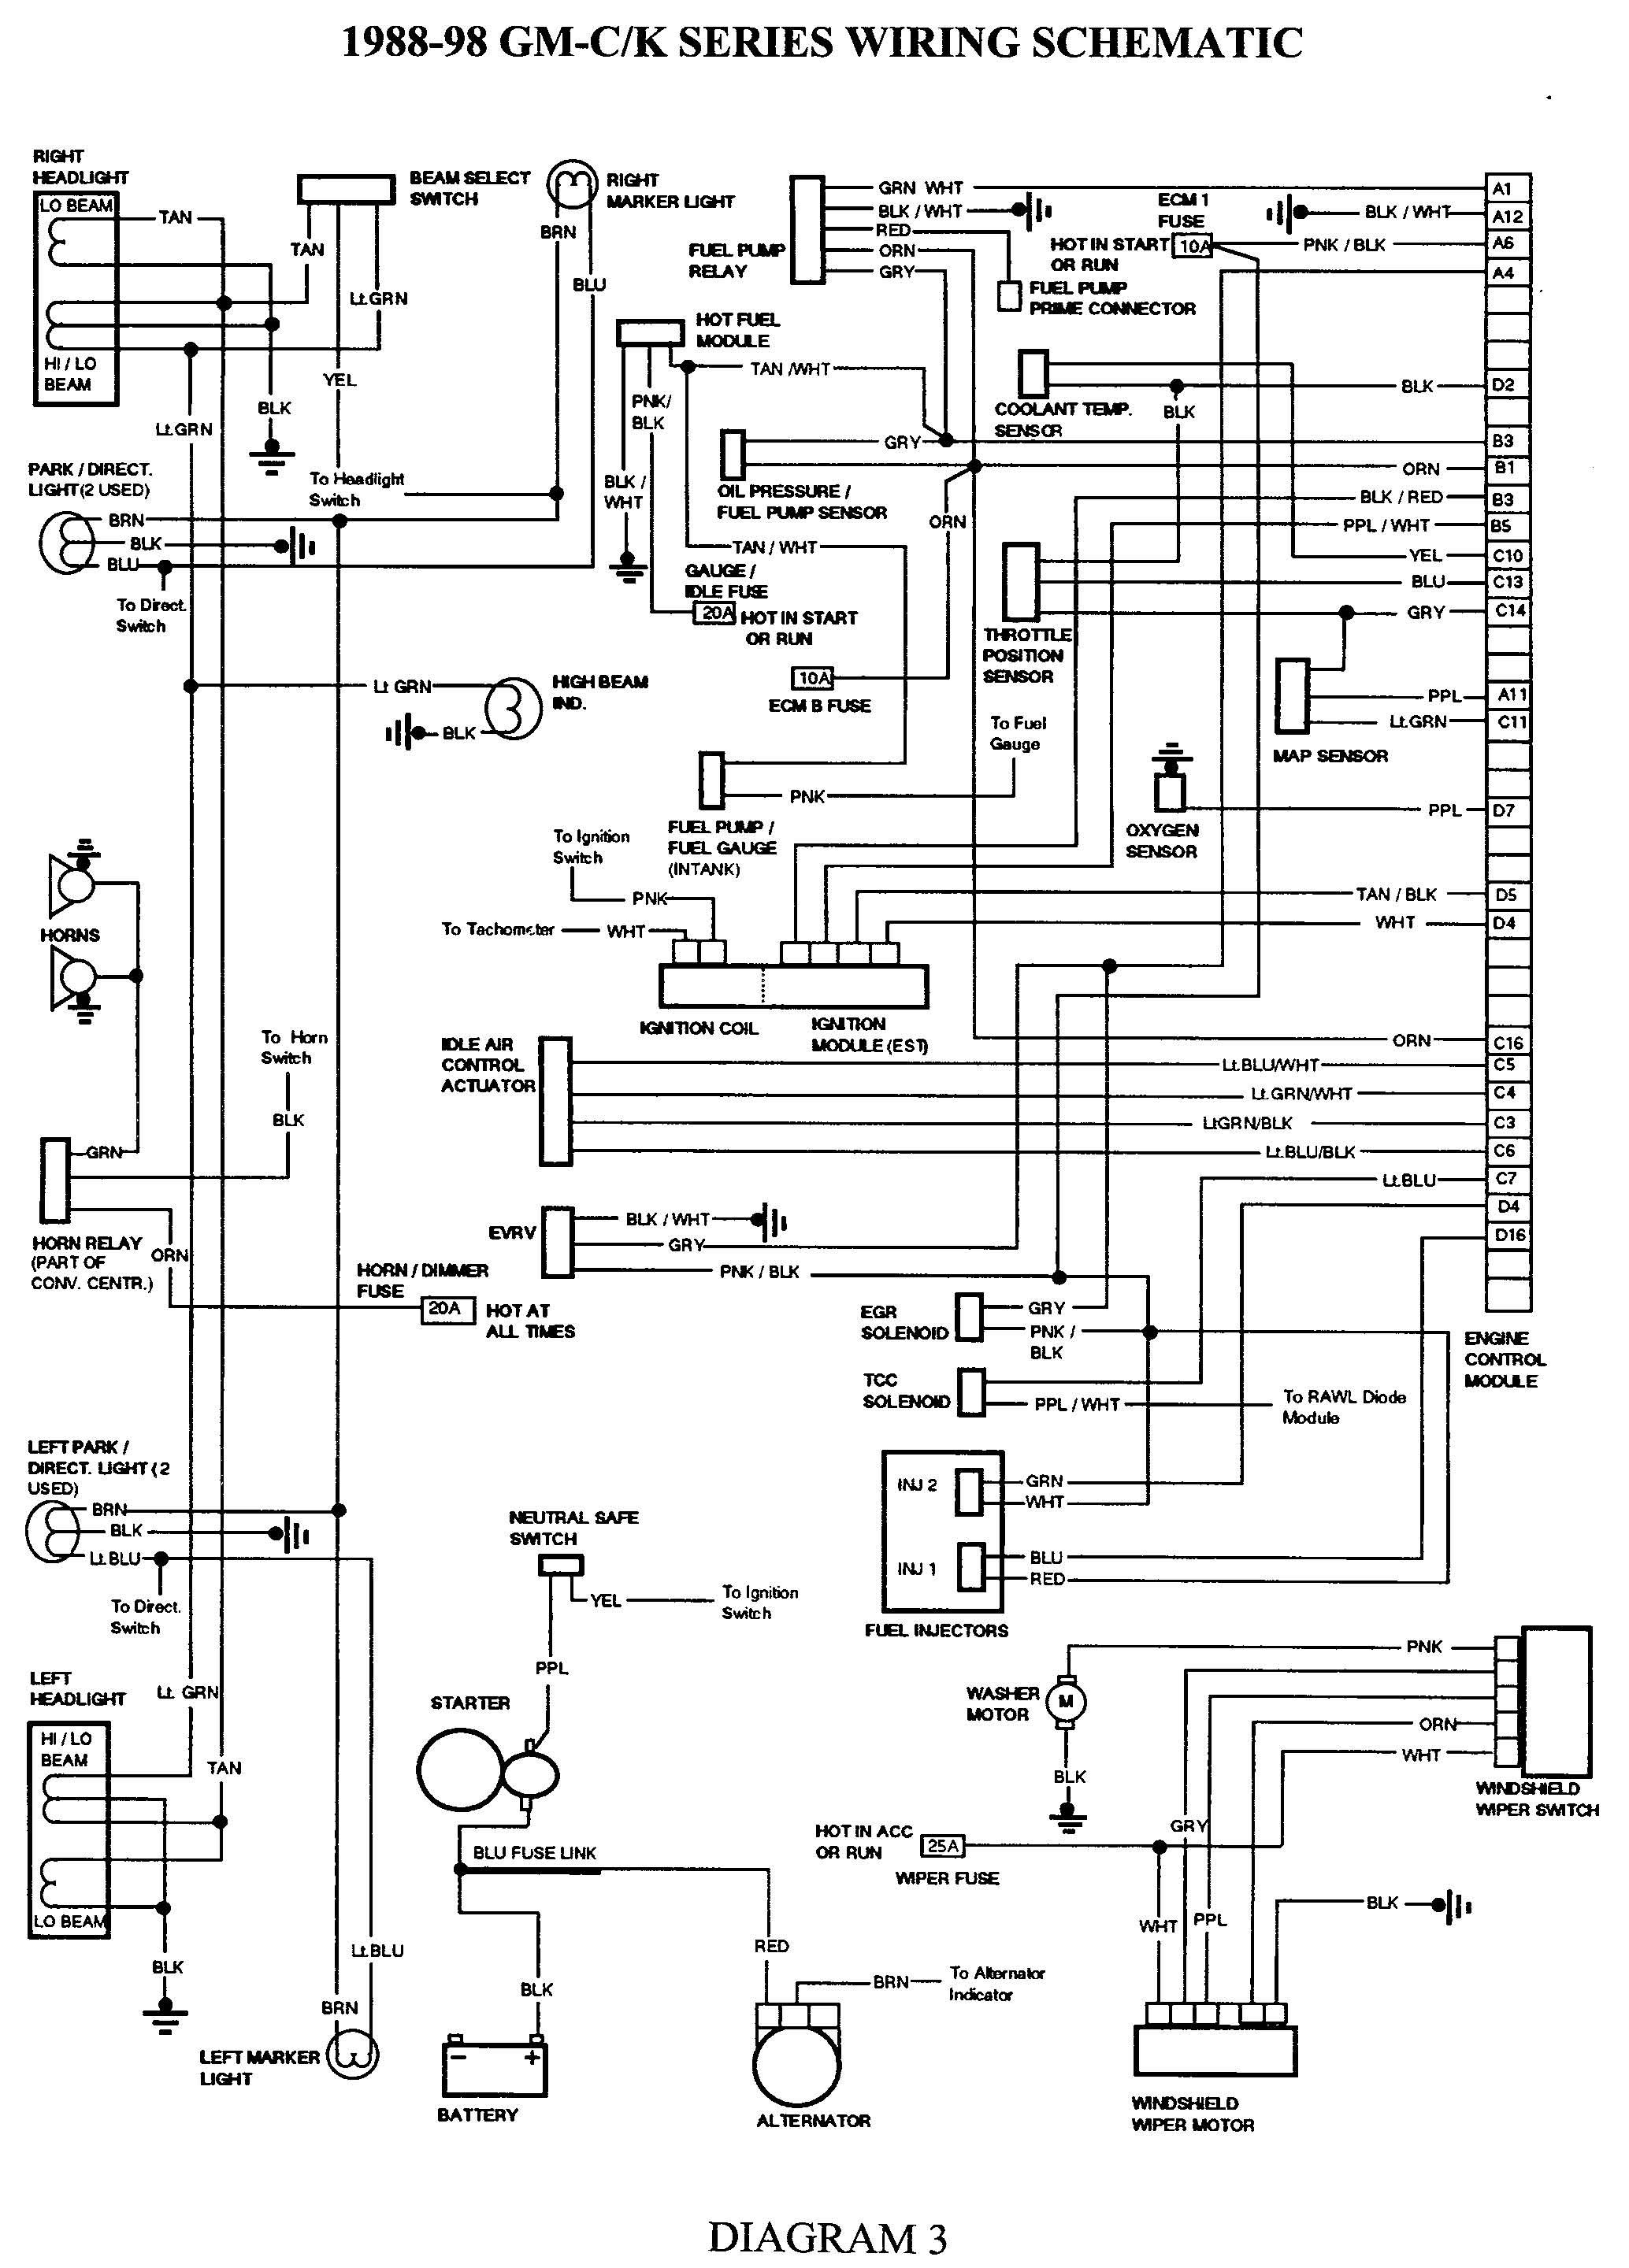 wiring diagram 89 s10 dome light wiring diagram sort dome light wiring diagram 1996 chevy blazer [ 2068 x 2880 Pixel ]